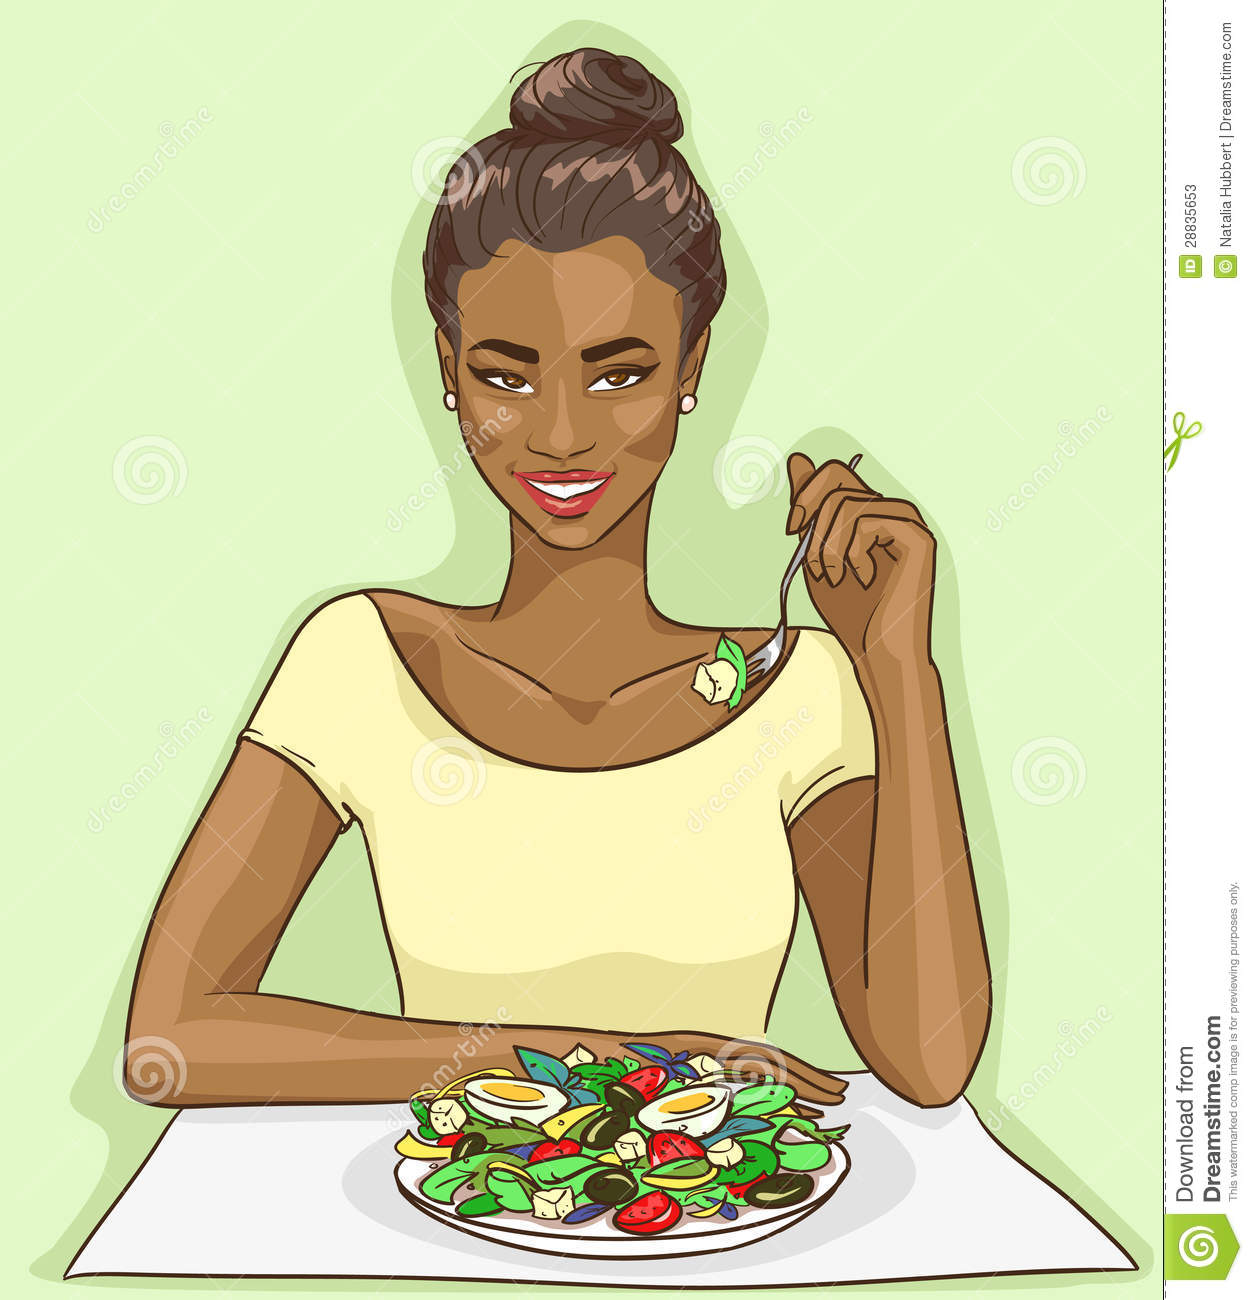 African American Woman Eating Salad Stock Photos   Image  28835653